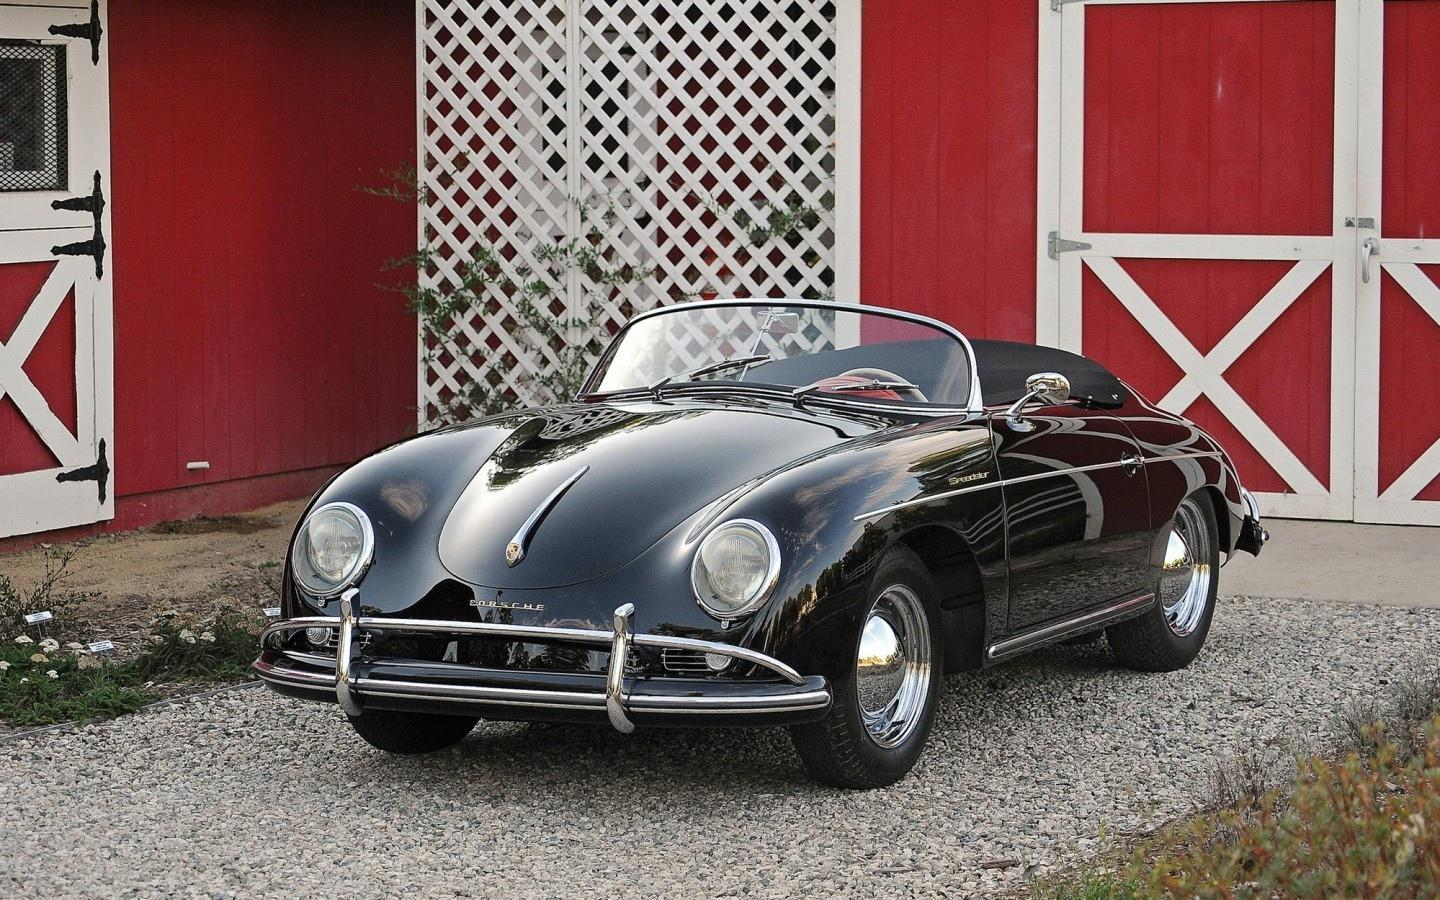 Porsche Hd Wallpapers 1080p: Porsche 356 Wallpaper HD Download